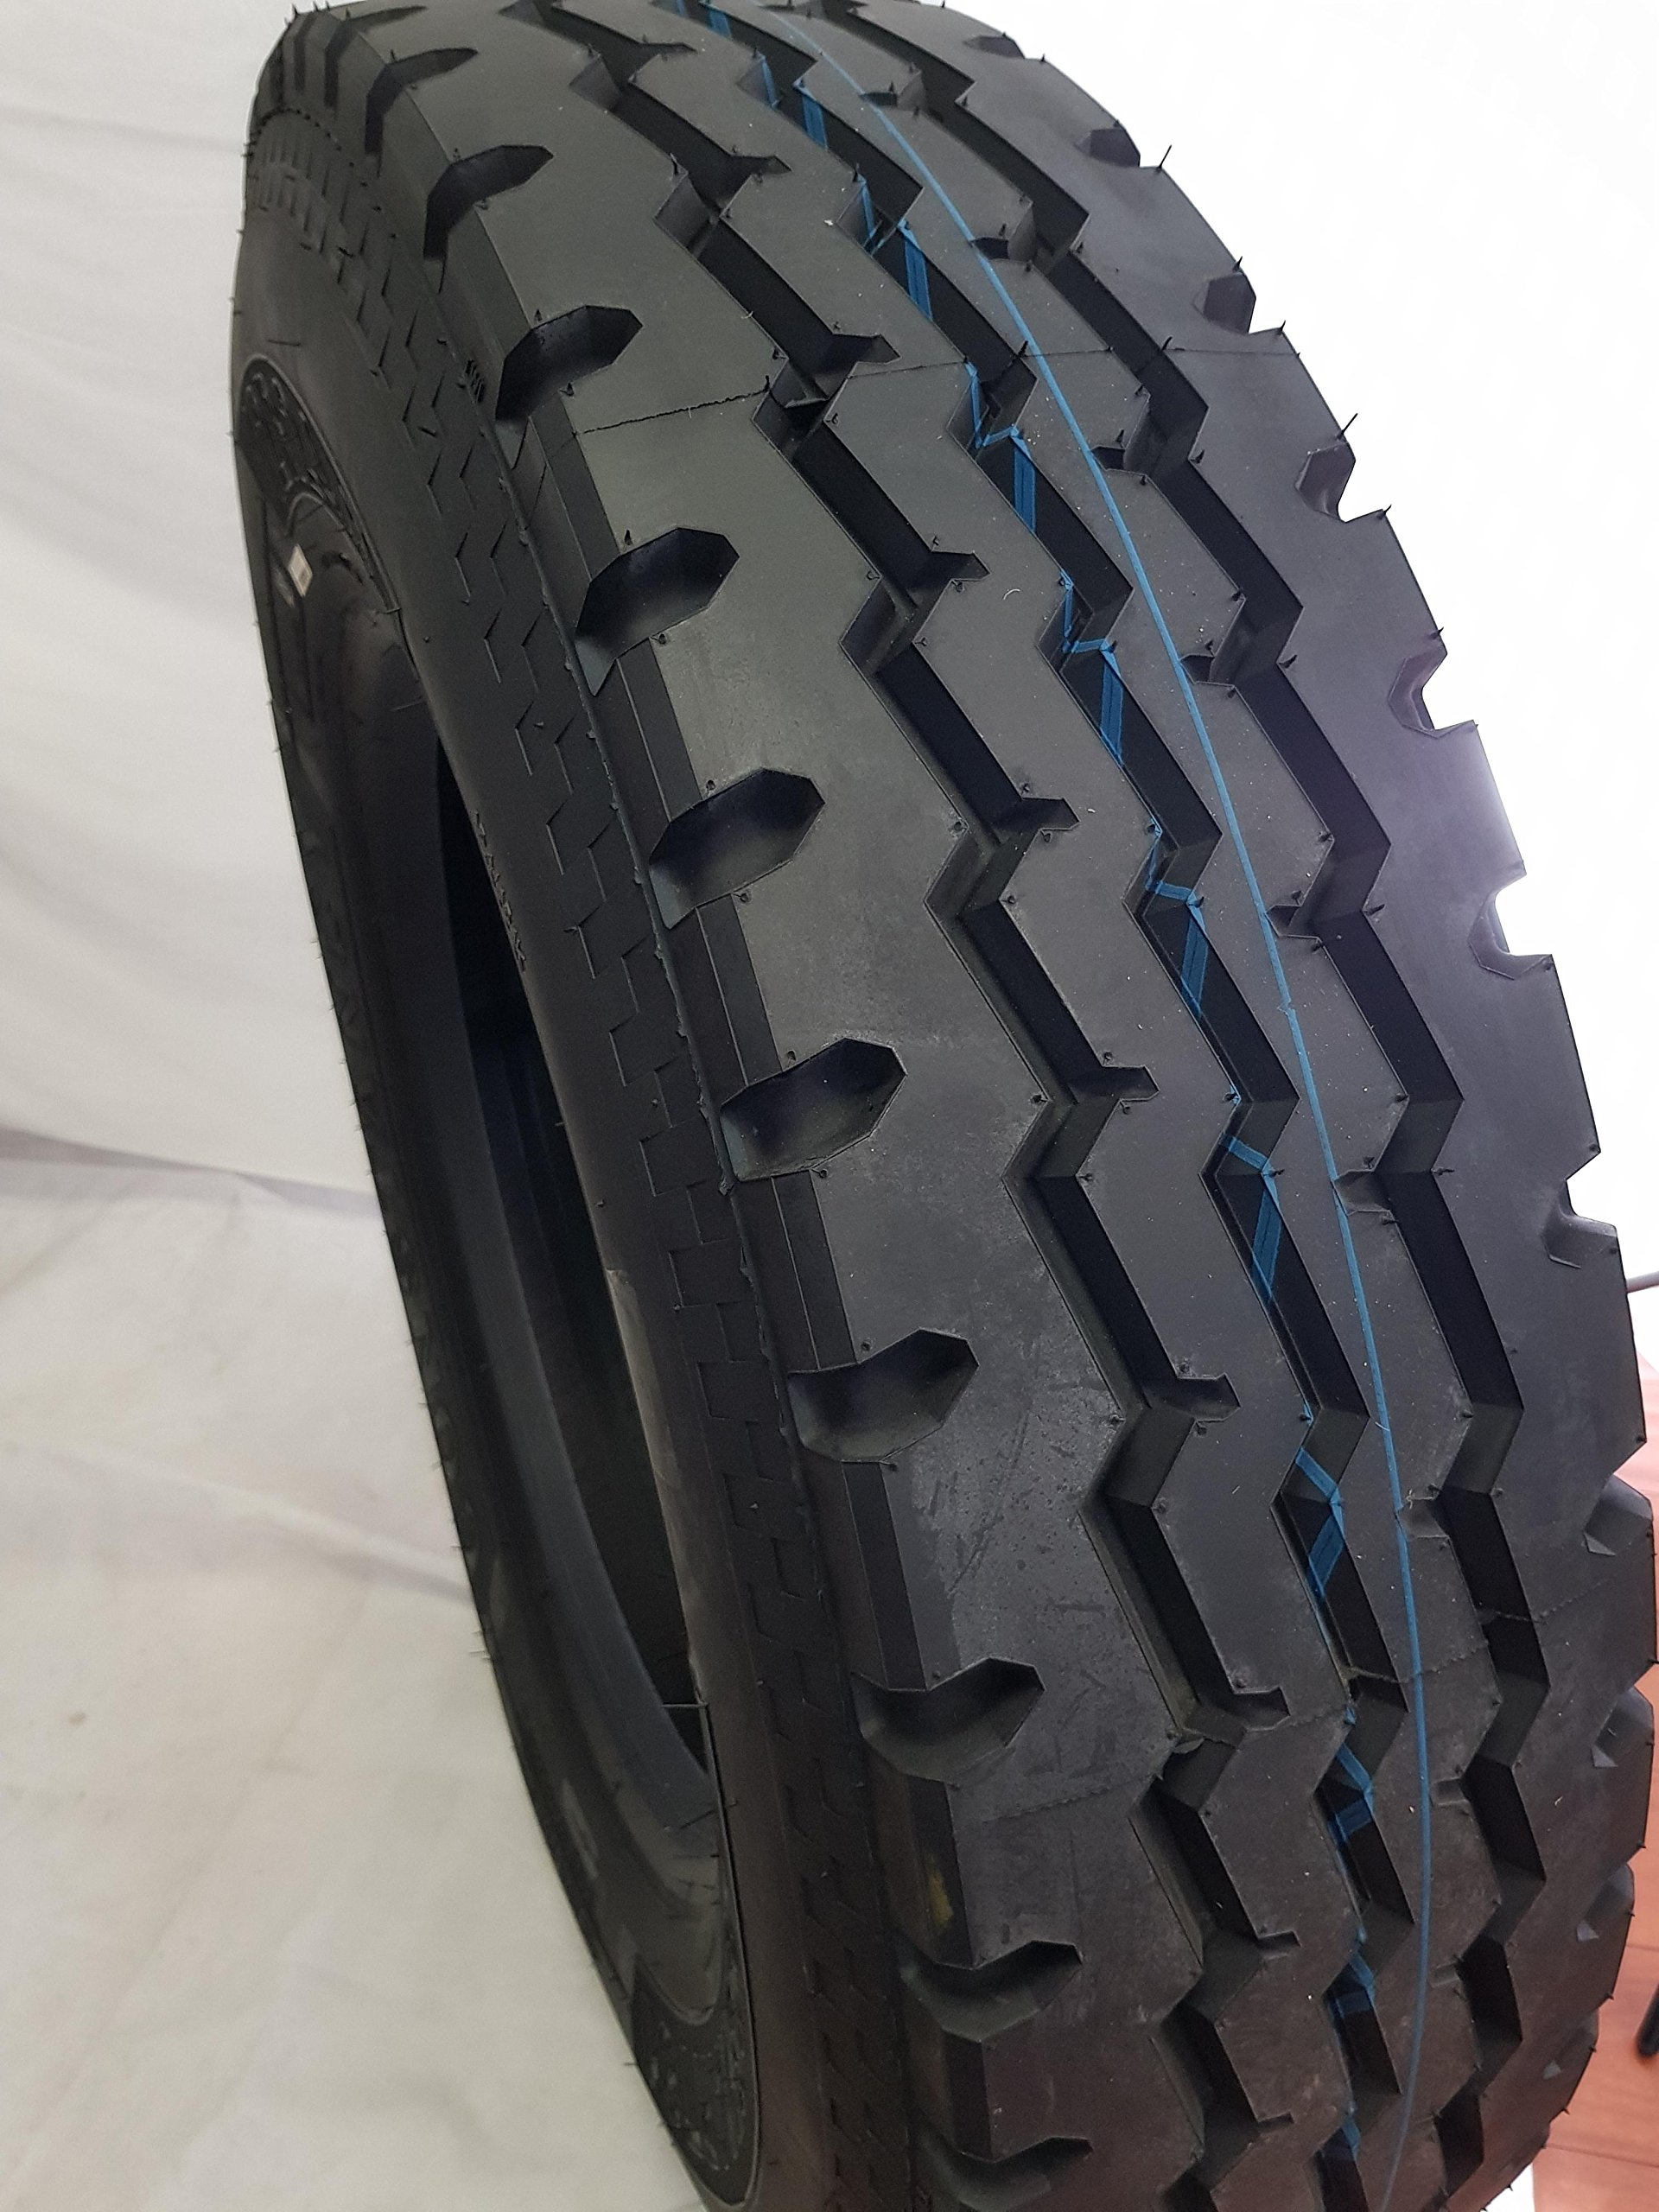 12R24.5 (2-Tires) ROAD WARRIOR CONSTANCY 12R24.5 J/18PR 152/149M- New Steer All Position 12225